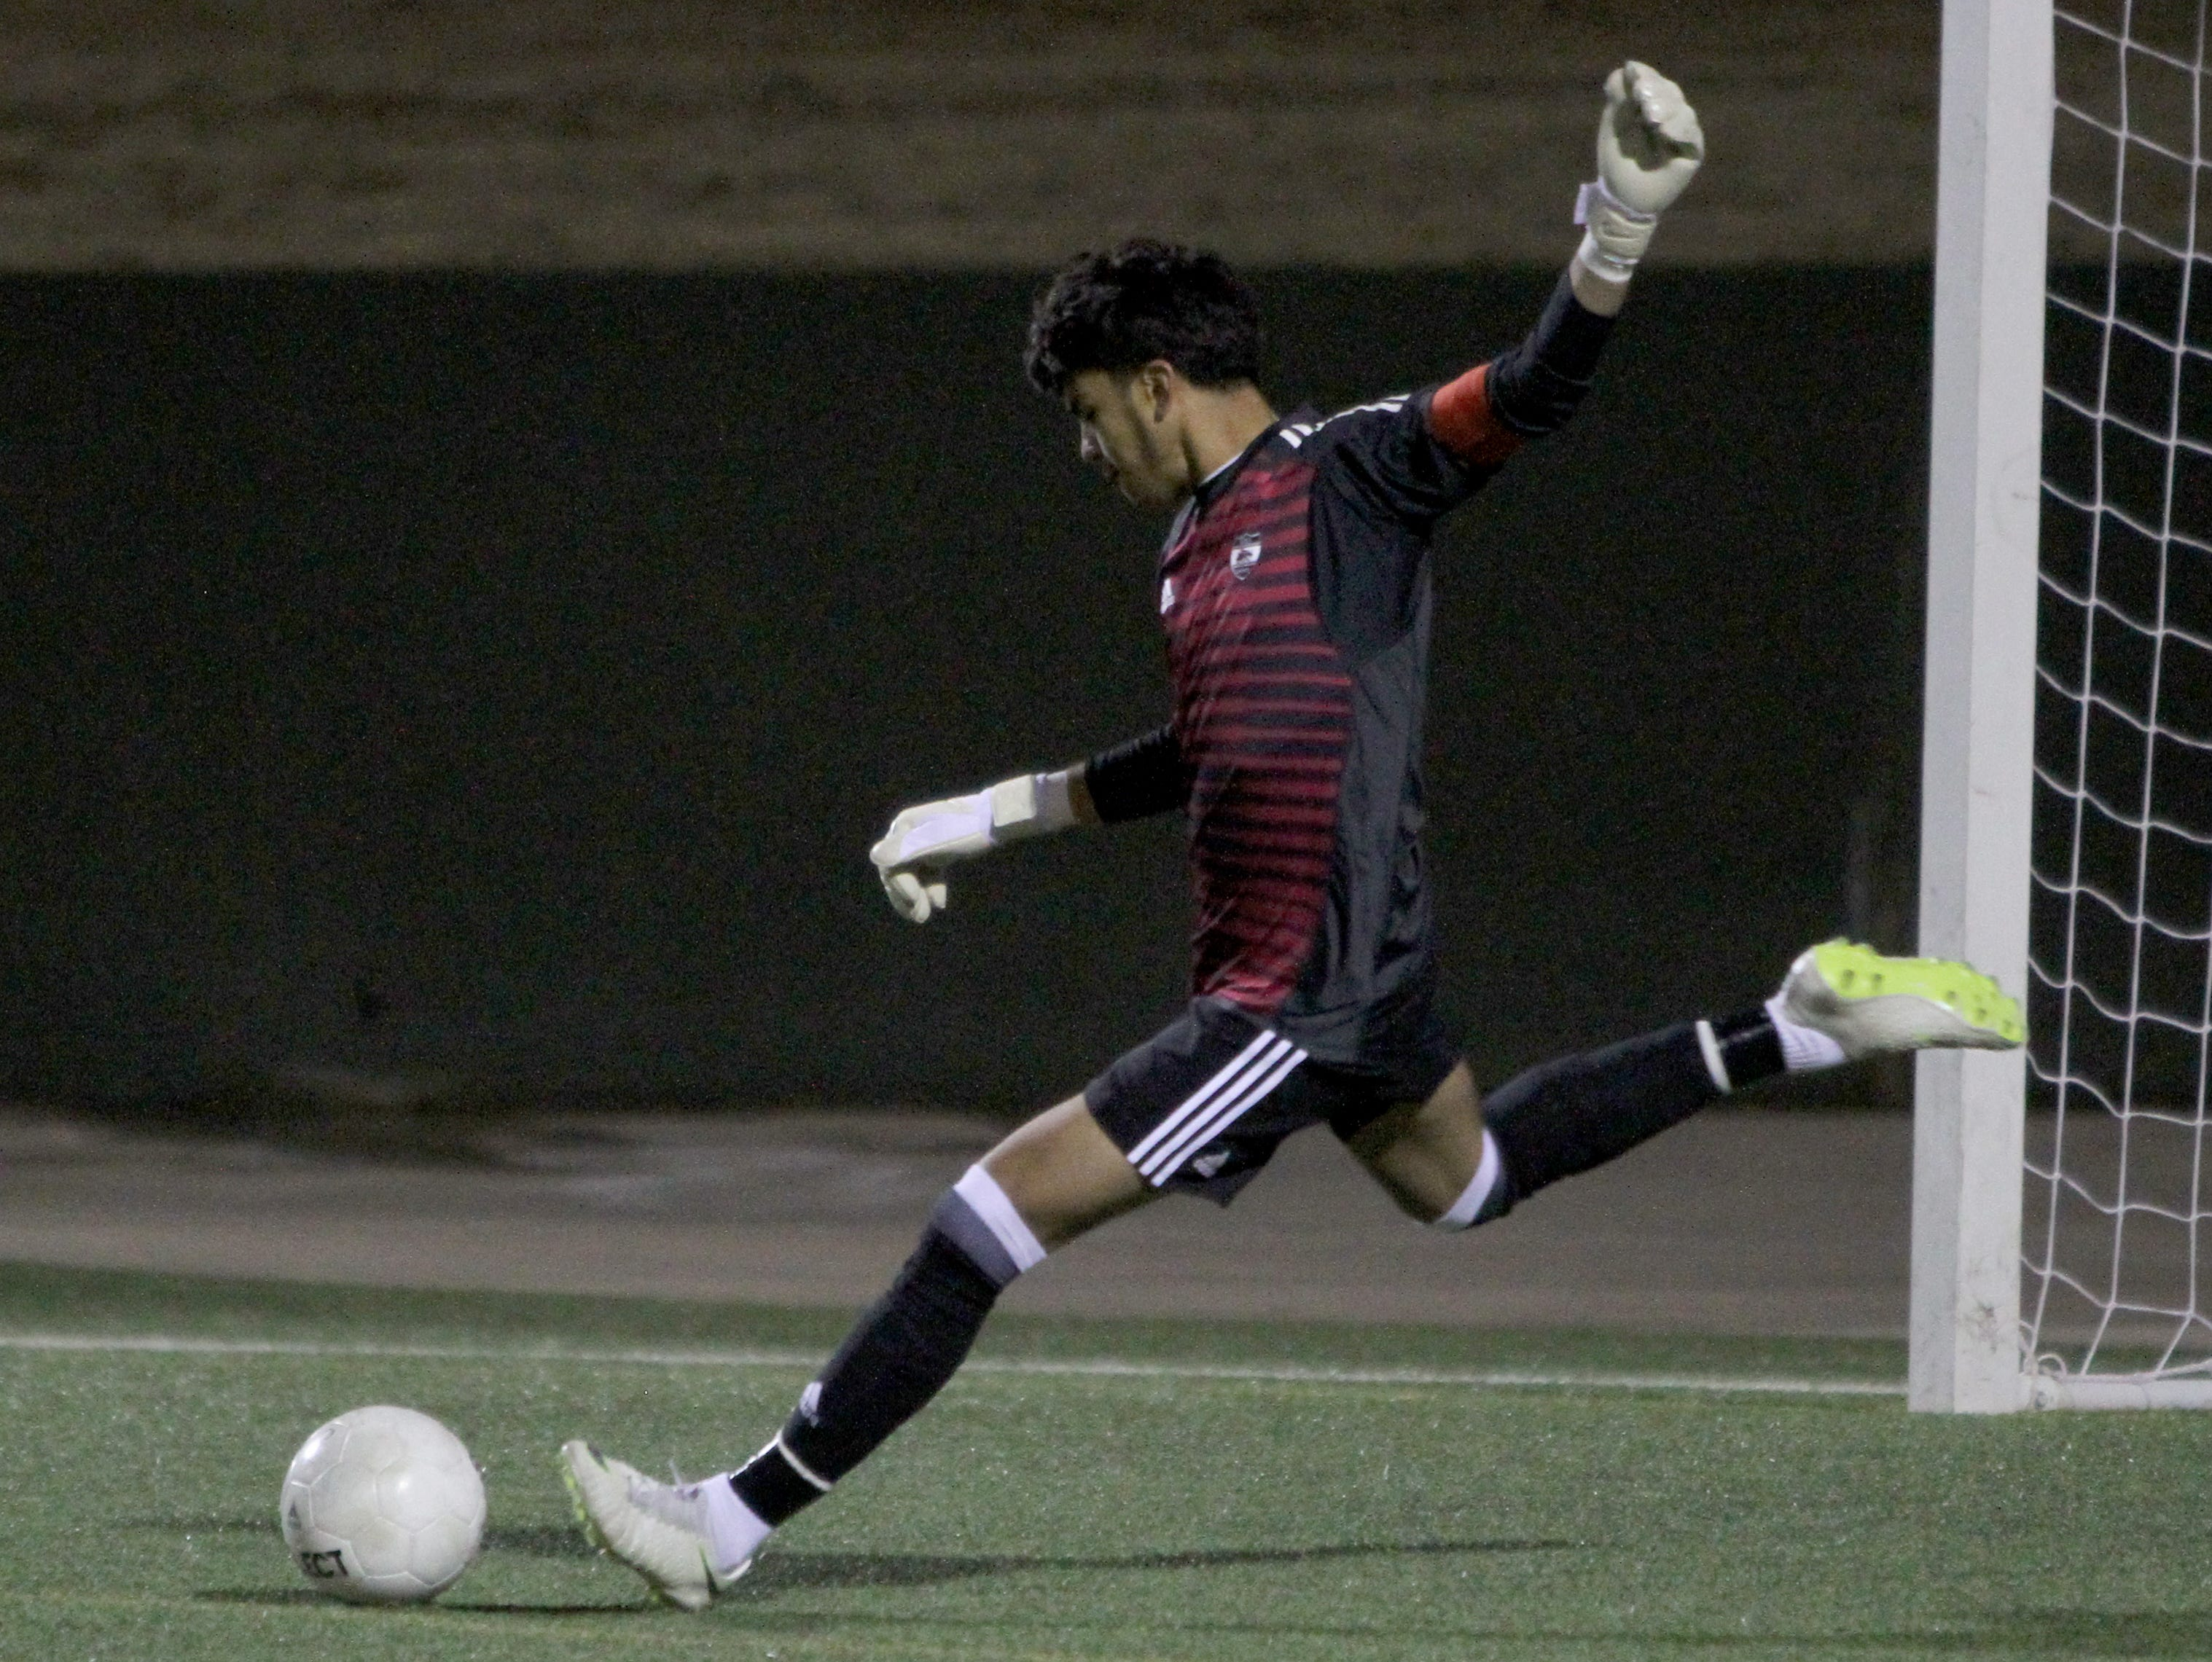 Wichita Falls High School's Israel Gonzalez takes a goal kick in the match against Aledo Tuesday, March 5, 2019, at Memorial Stadium.